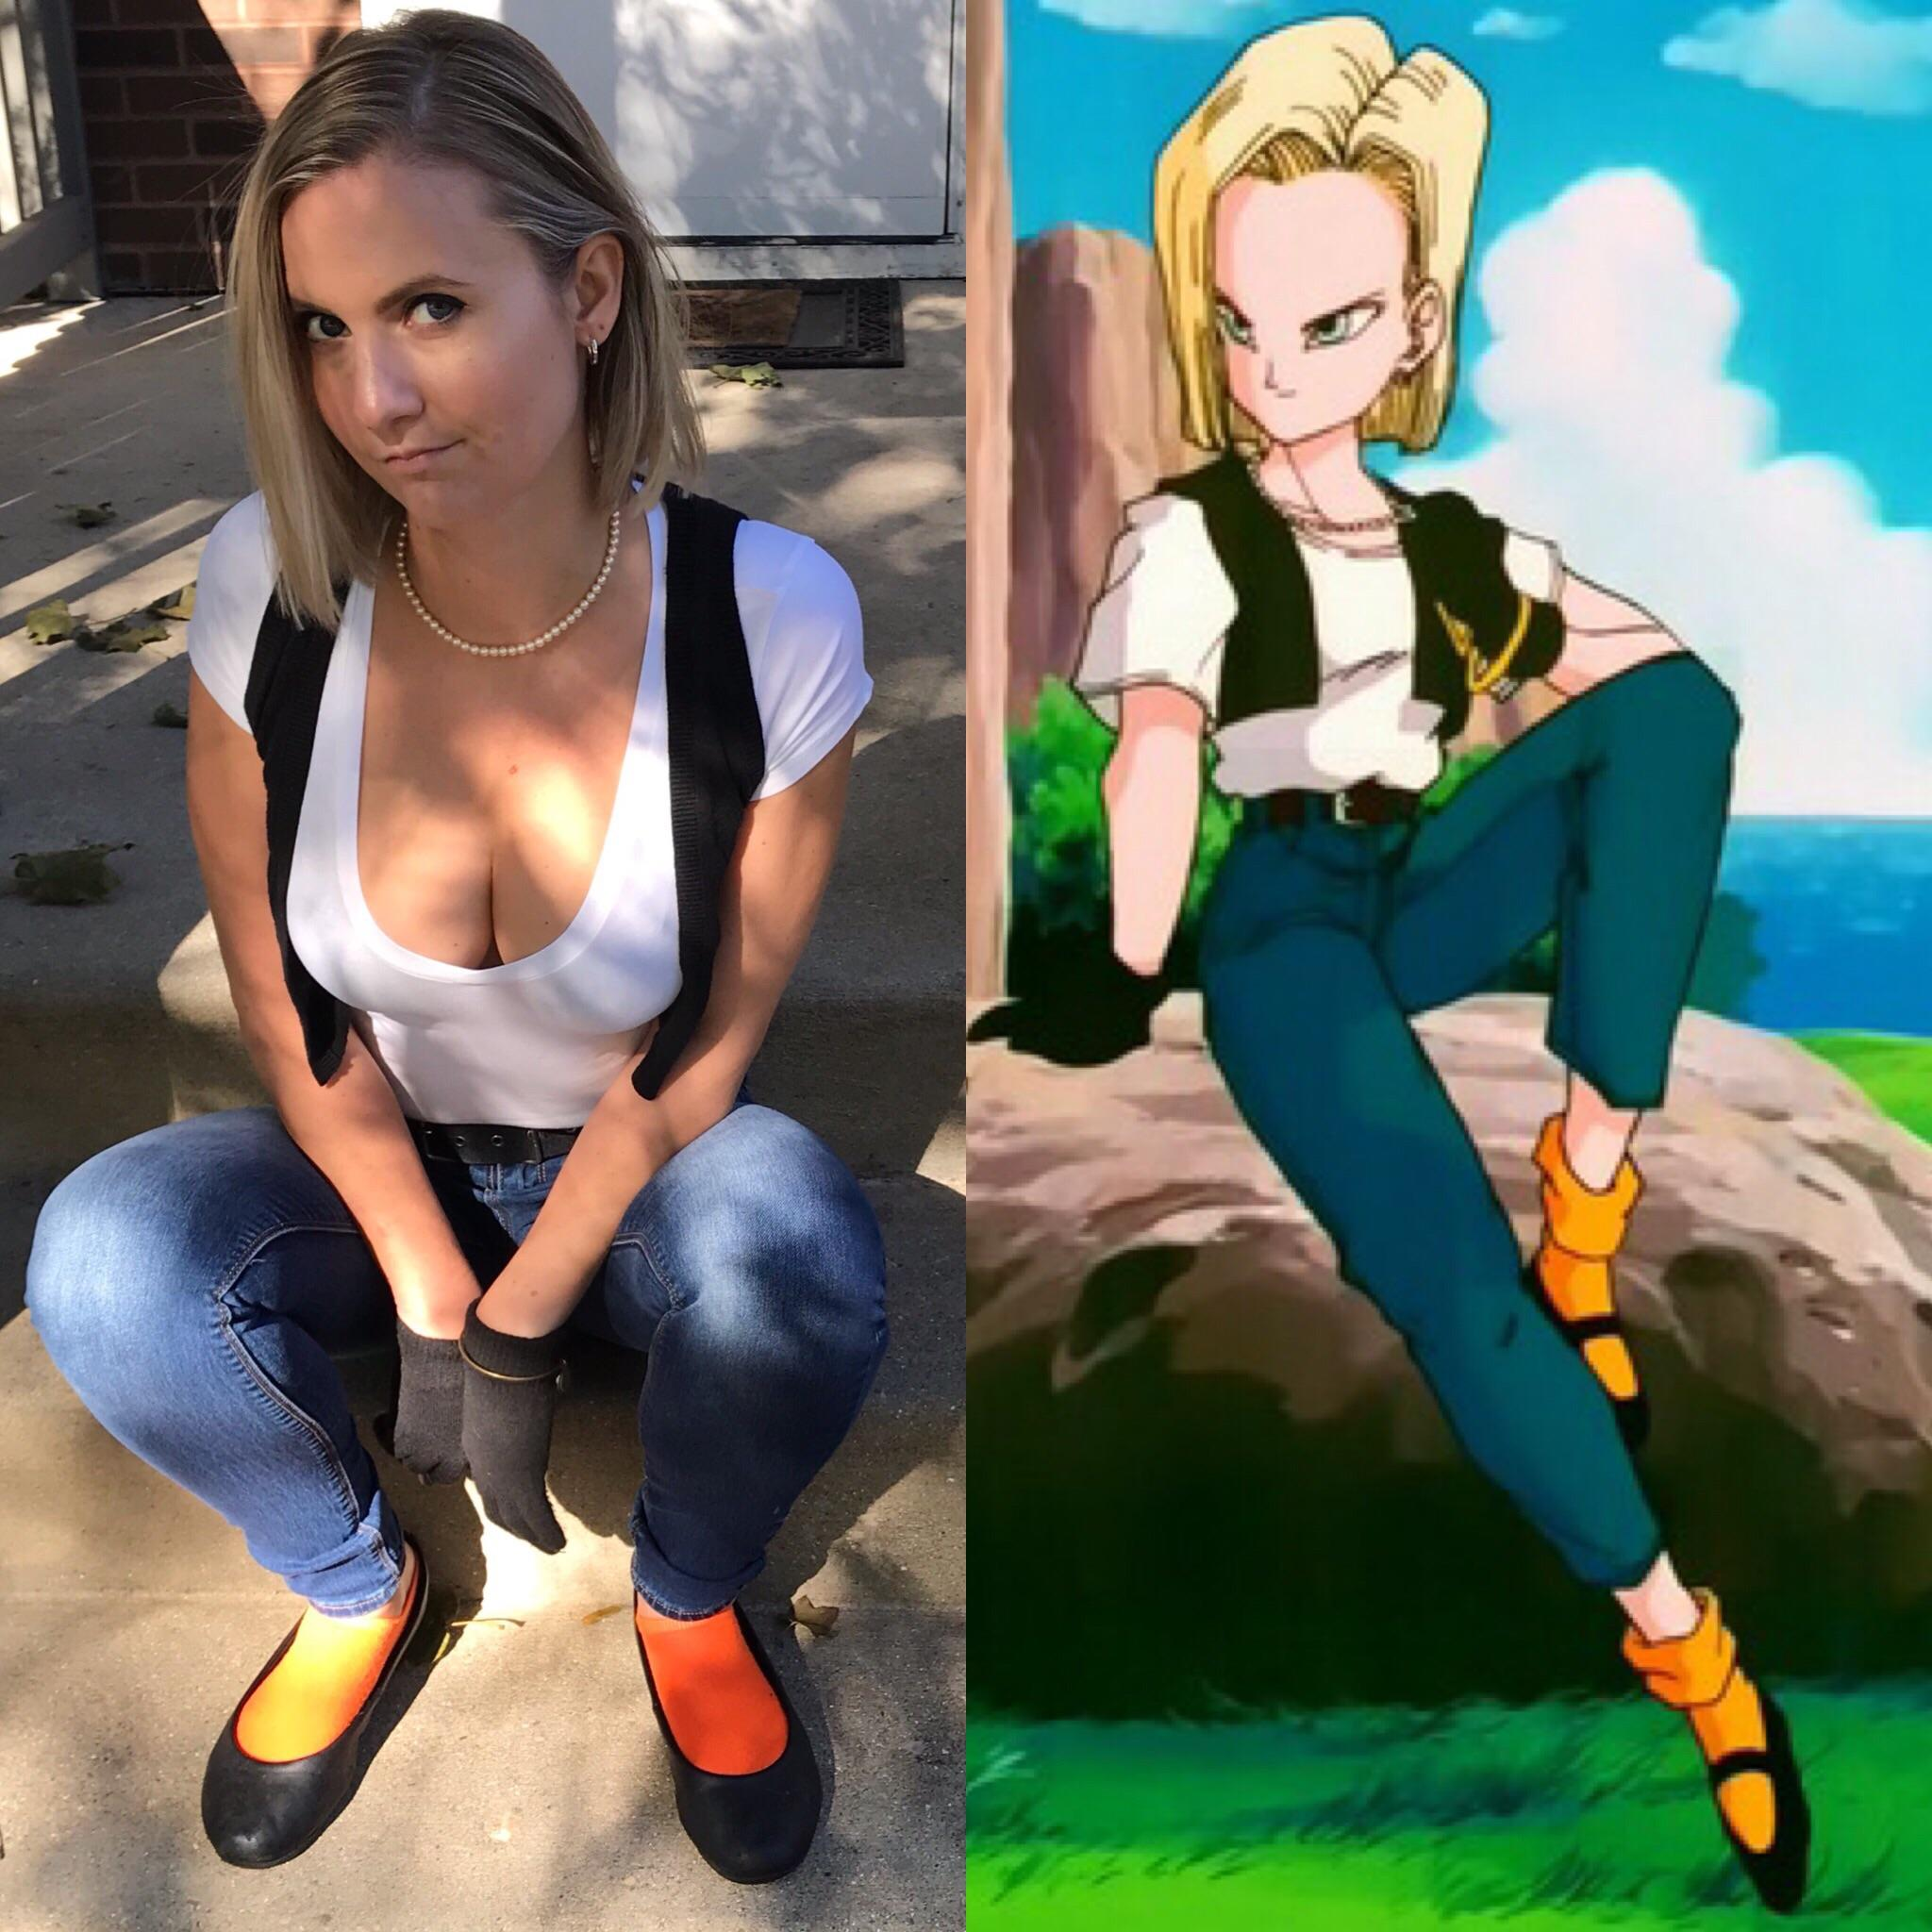 Android 18 Cosplayer Vs Character Paige Parker